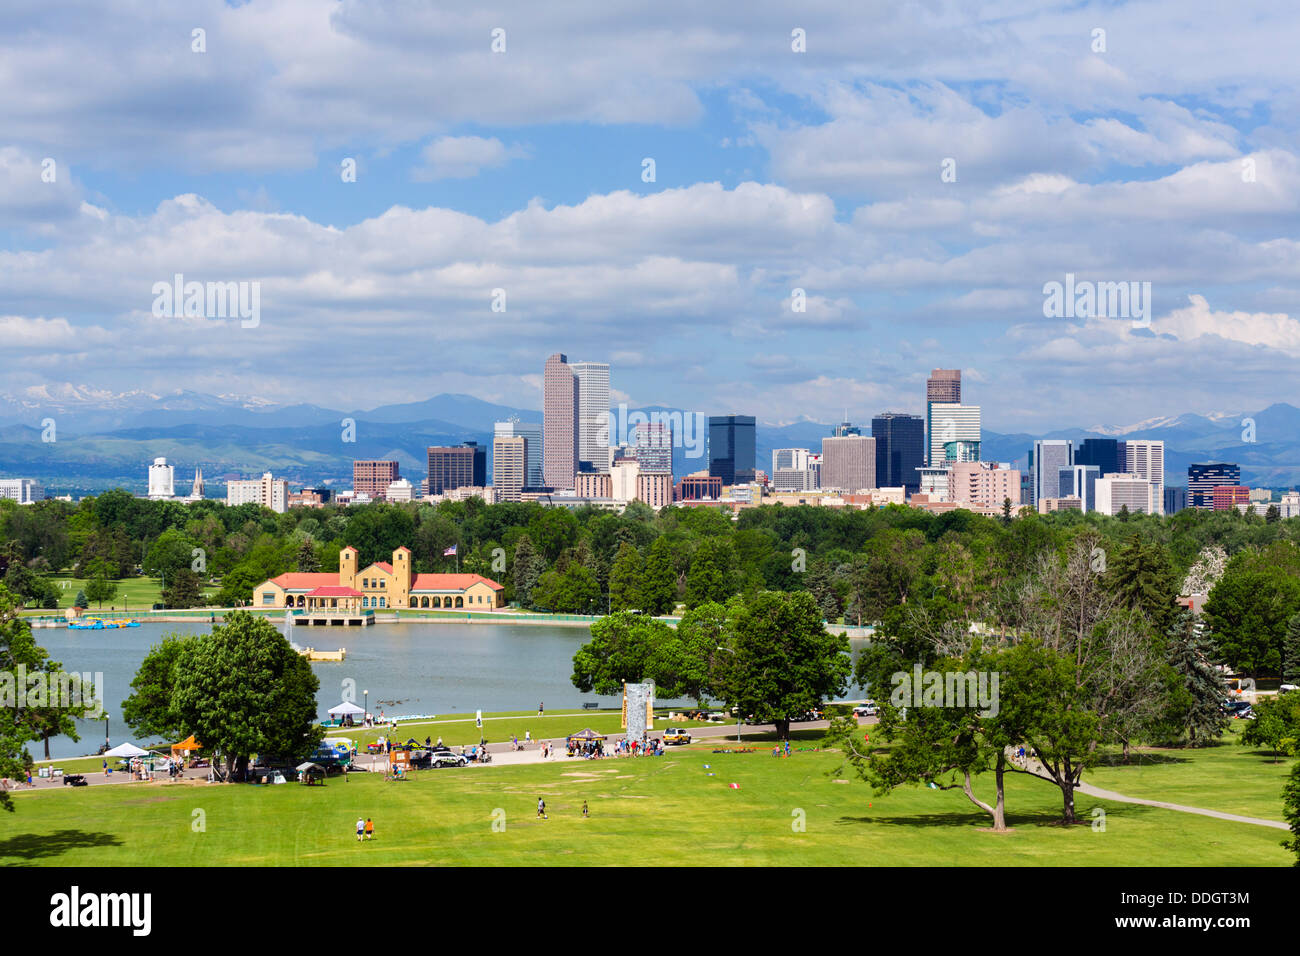 Downtown Denver city skyline from City Park with the Rocky Mountains in the distance, Colorado, USA - Stock Image